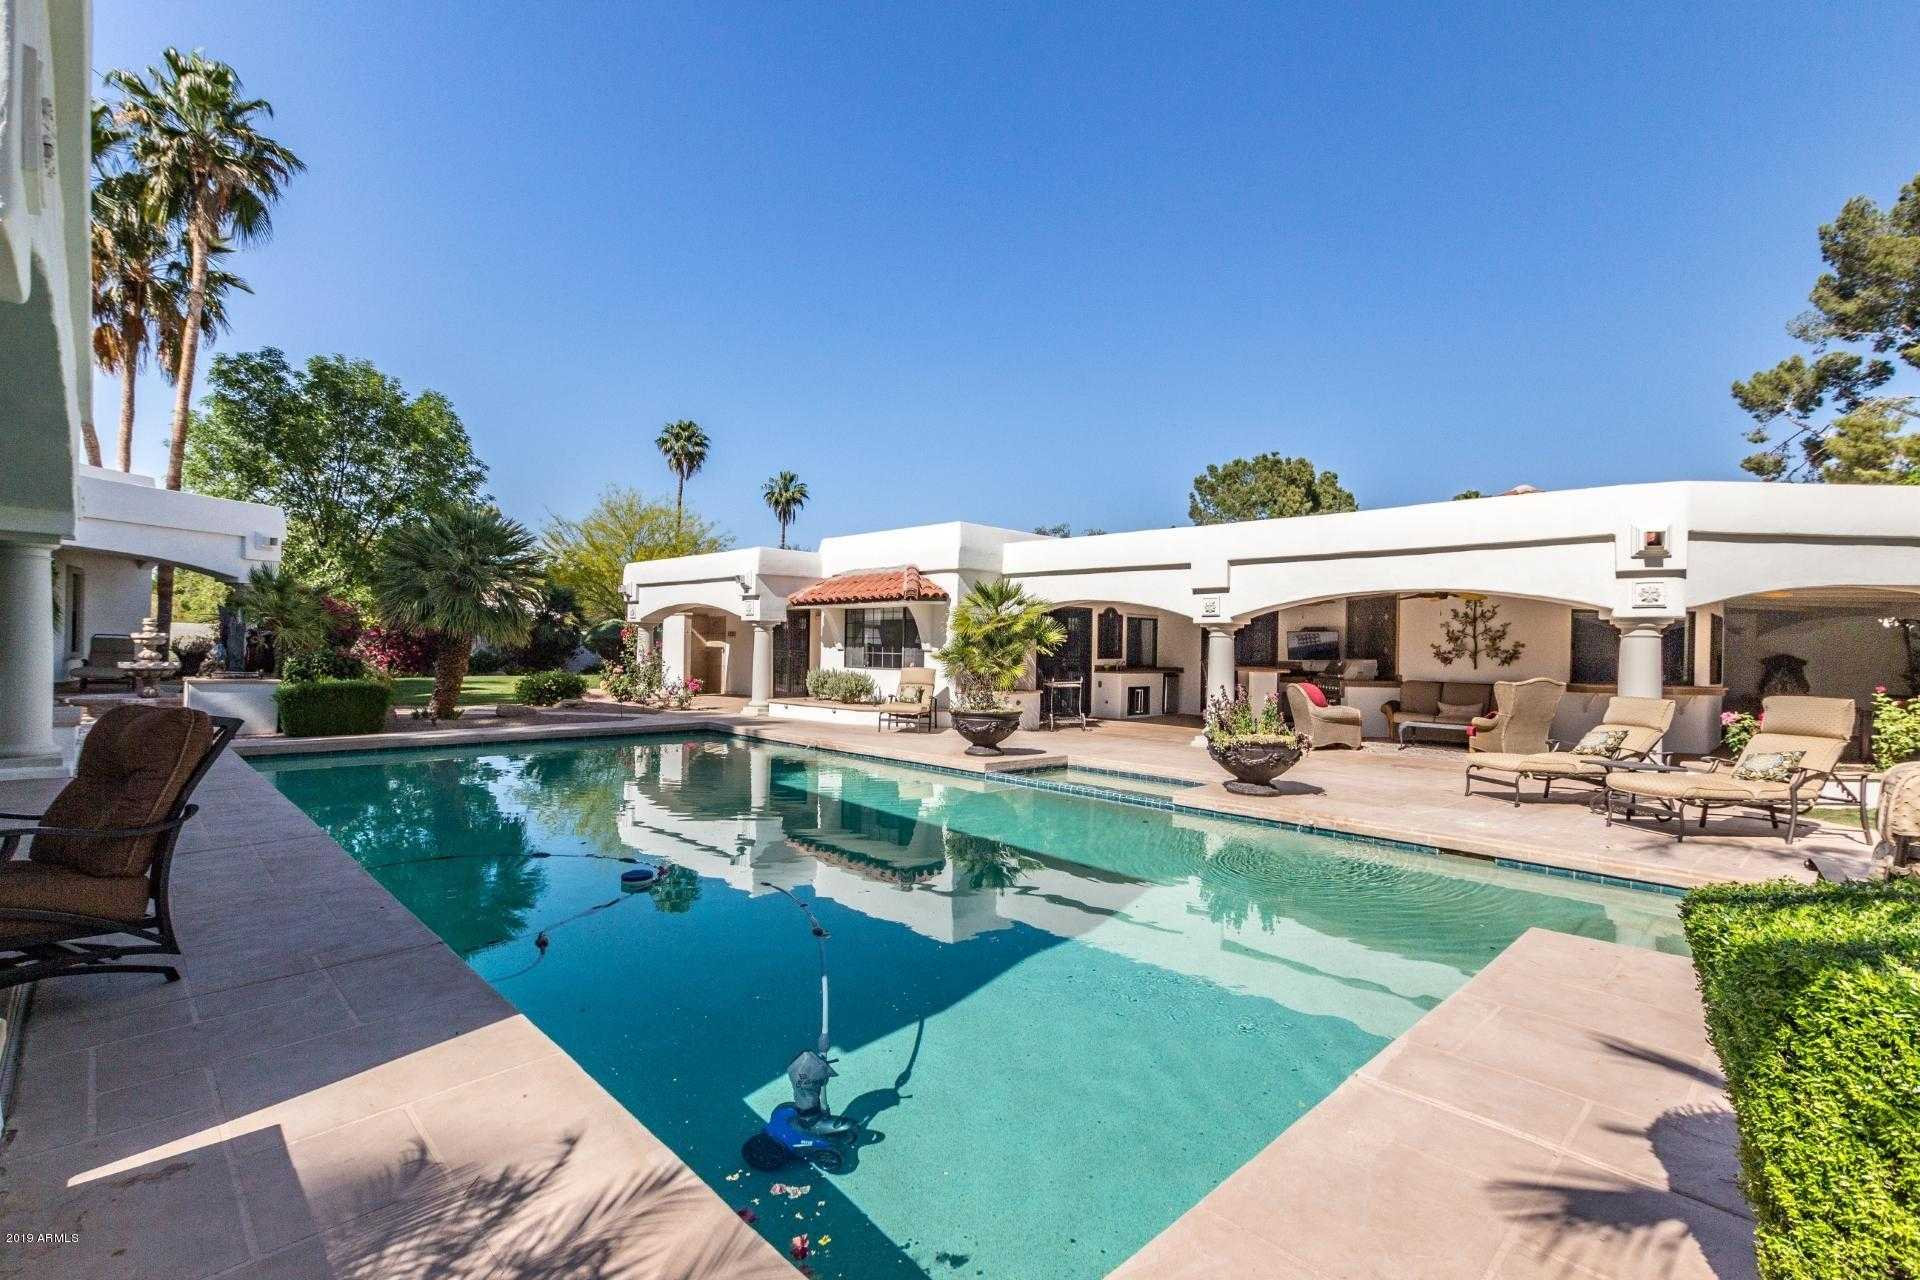 $2,500,000 - 6Br/6Ba - Home for Sale in Desert Arroyos, Paradise Valley